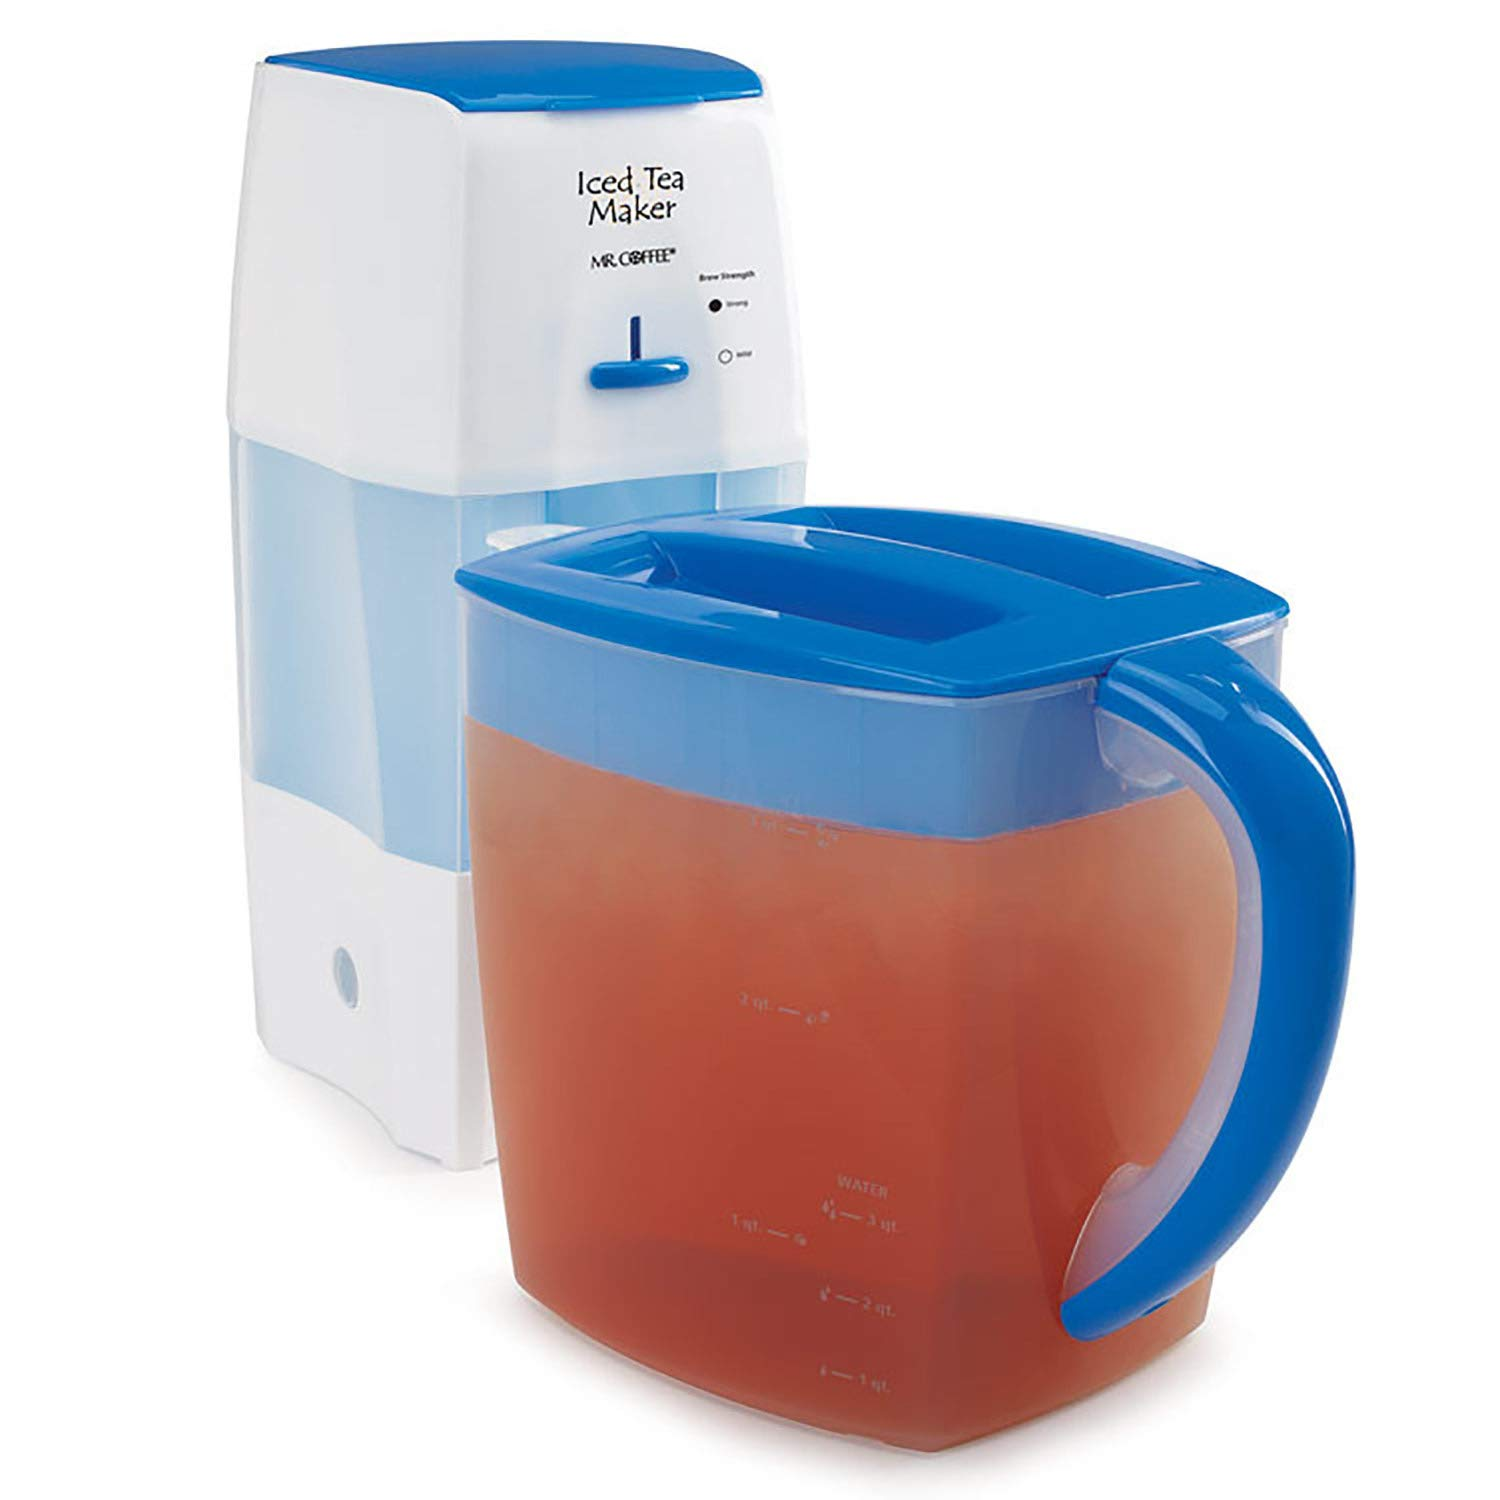 Mr. Coffee Iced Tea Maker 3 Quart with Brew Strength Selector (Blue) by Mr. Coffee